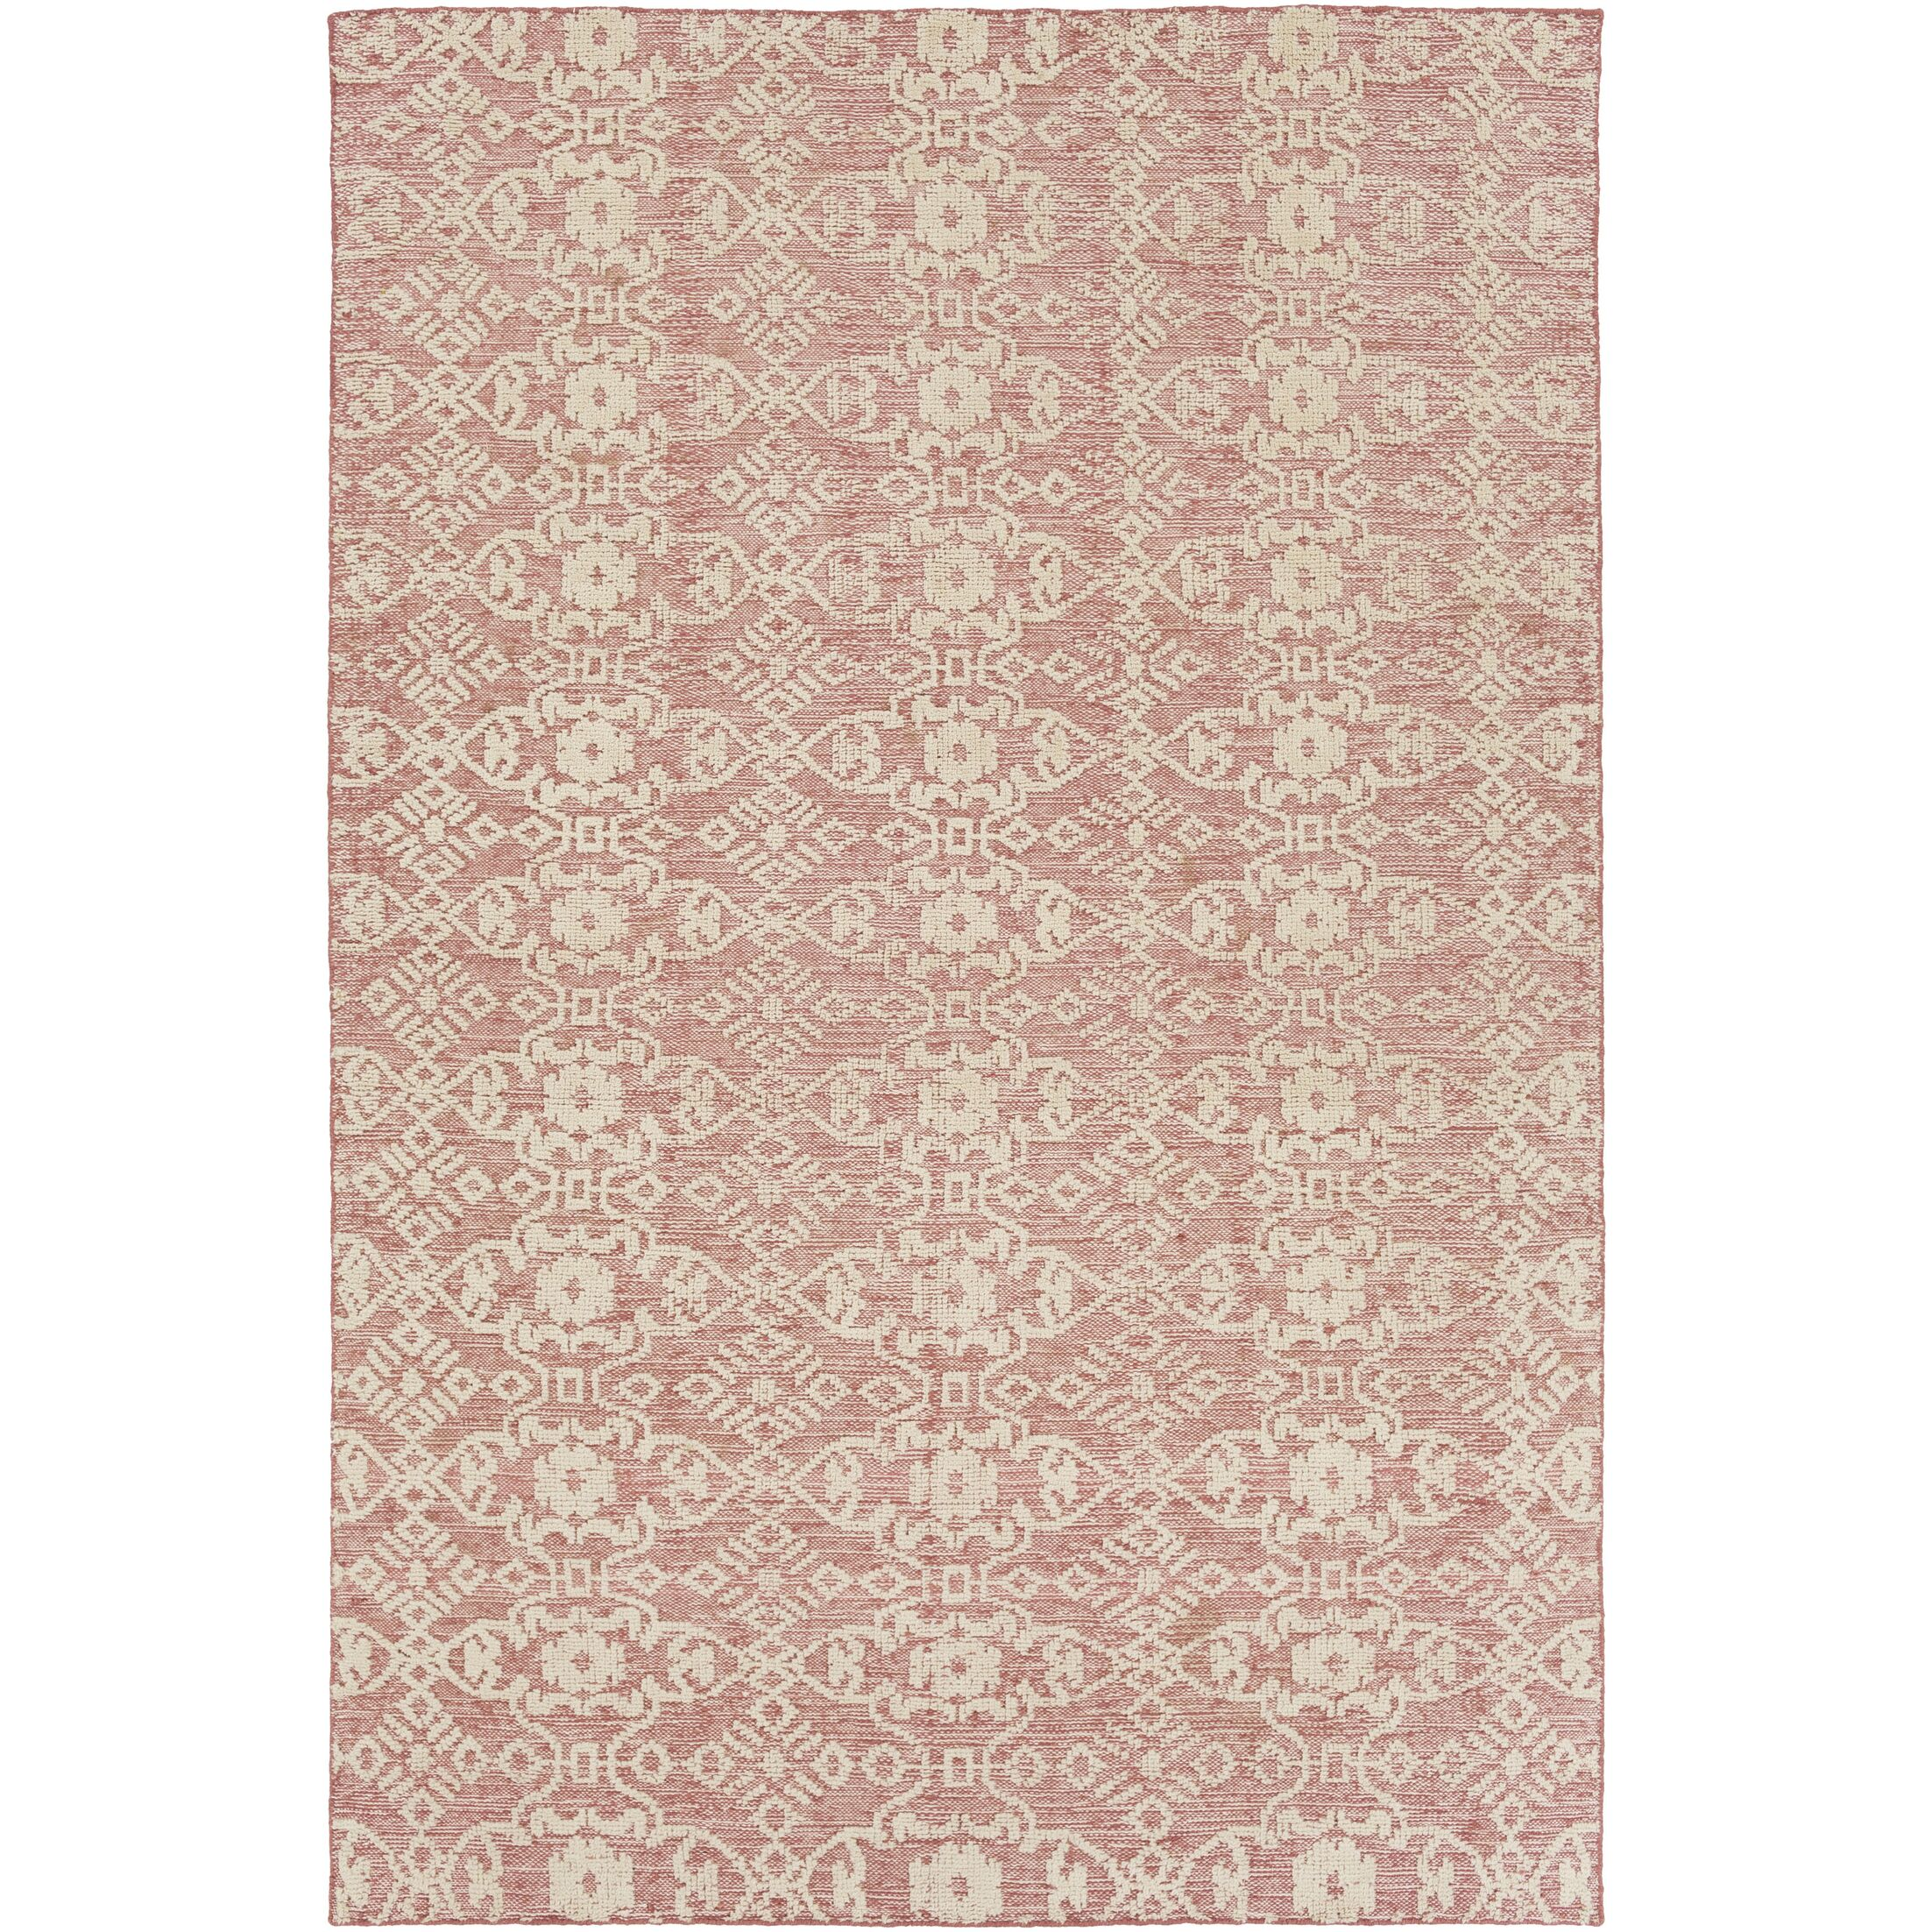 Eramana Light Pink Area Rug Rug Size: Rectangle 9' x 13'